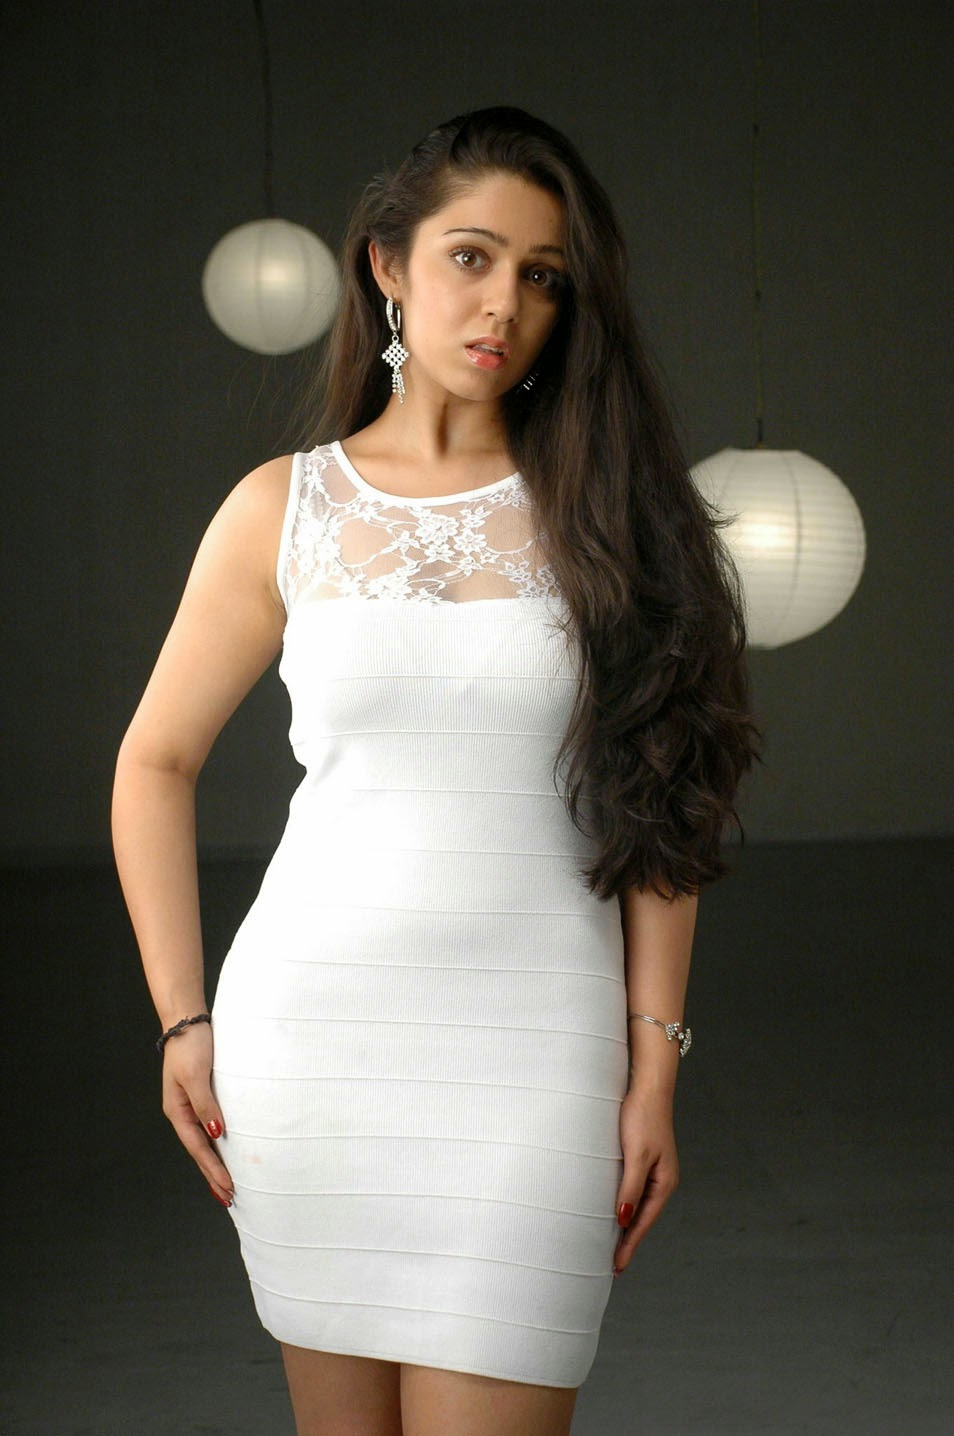 Charmy Kaur Smile Hot - High Resolution Pictures-5538